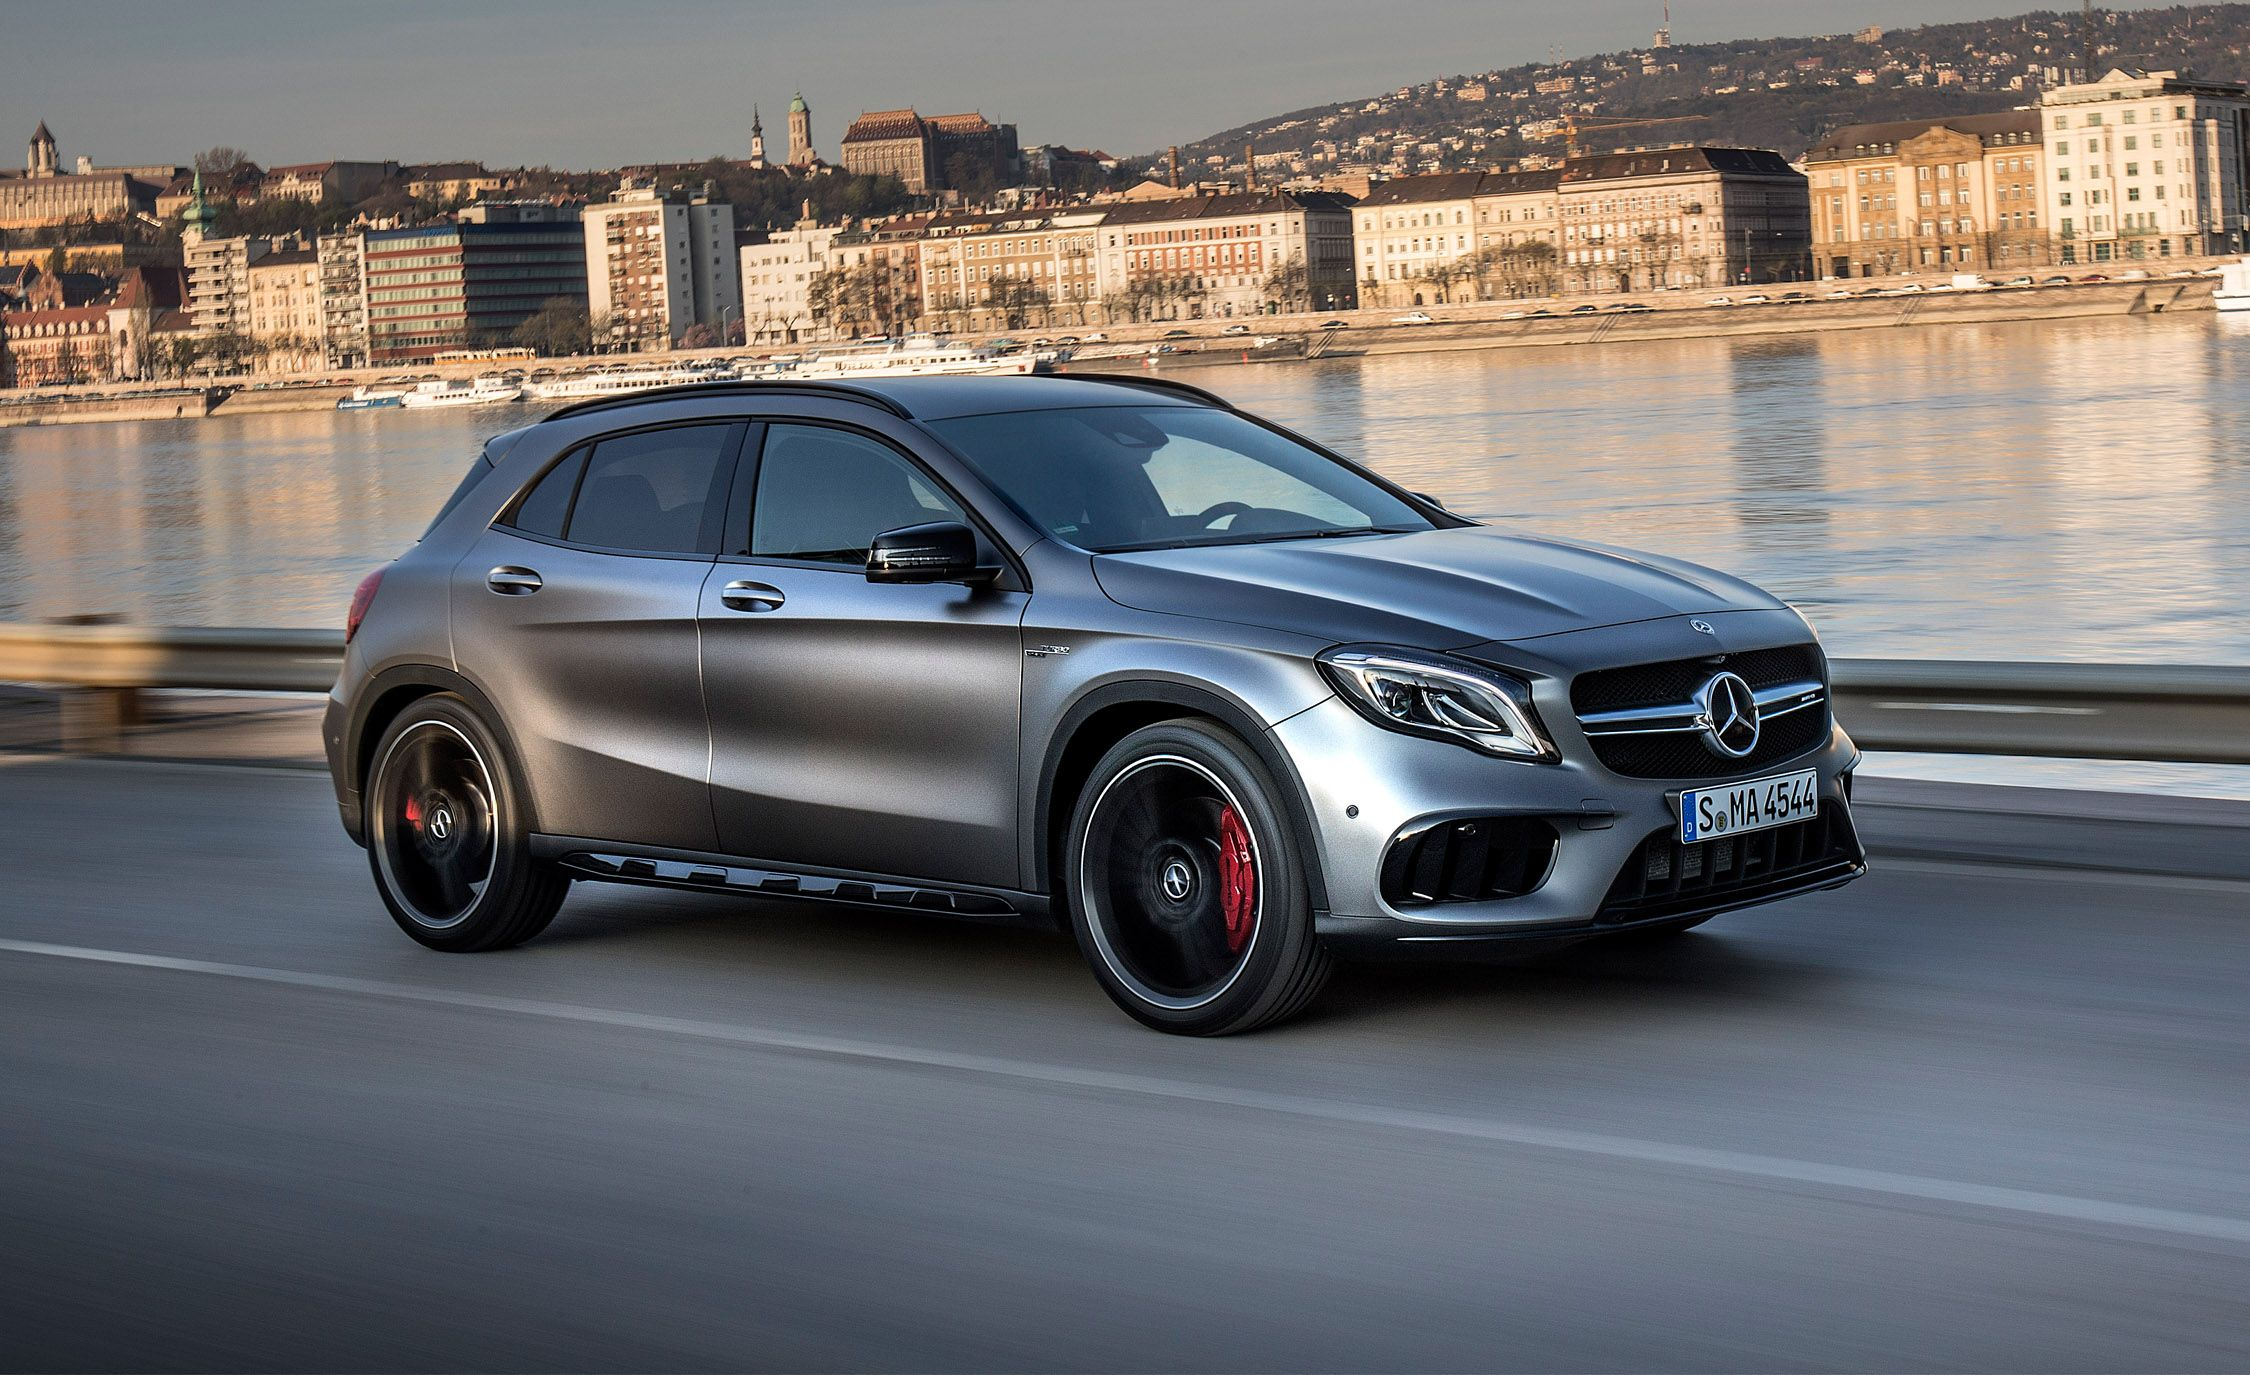 2017 Mercedes AMG CLA45 4MATIC And 2018 GLA45 4MATIC